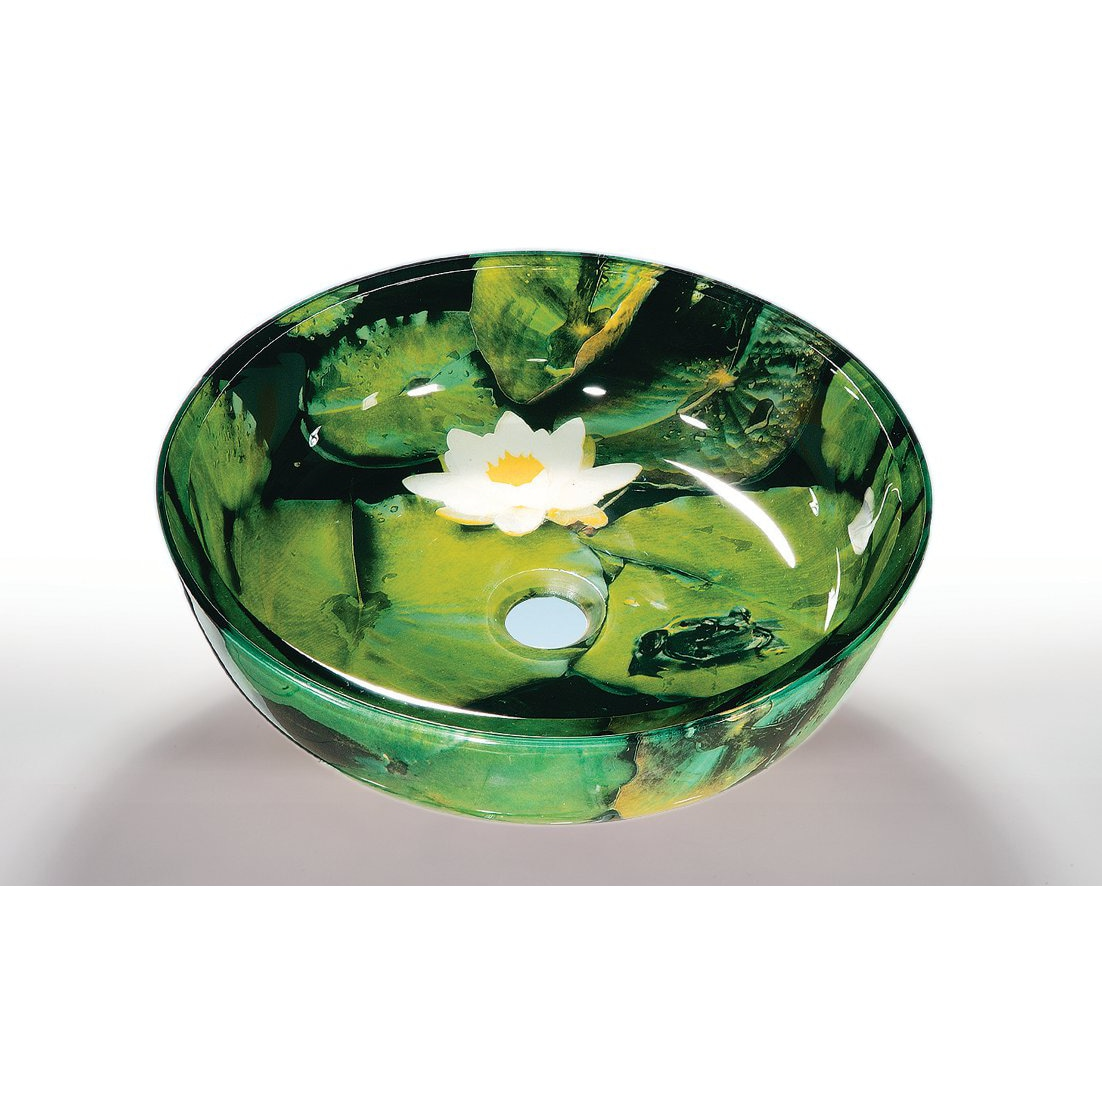 Lilly Pad Glass Bowl Vessel Bathroom Sink - 14535316 - Overstock.com ...